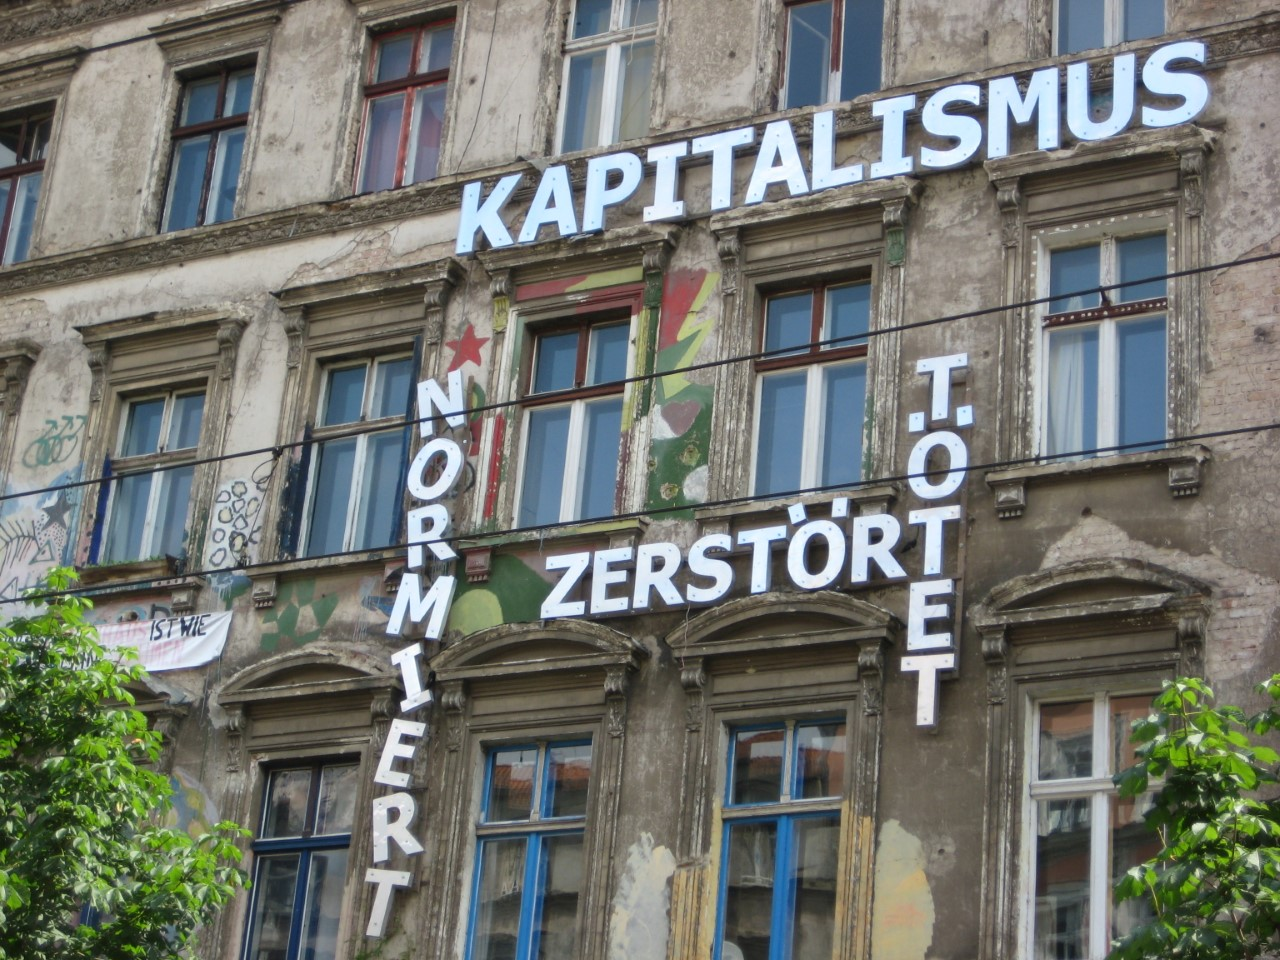 """A message on the facade of Kastanienallee 86 reads """"Capitalism normalizes, destroys, kills"""". The building contains two Hausprojekte, or """"living projects"""" that proliferated the new city center of reunified Berlin: the Tuntenhaus, or """"Queer House"""", takes up the back wing of the building, and the KA 86 Hausprojekt faces the street. 2007. Courtesy of Daniela Sandler."""